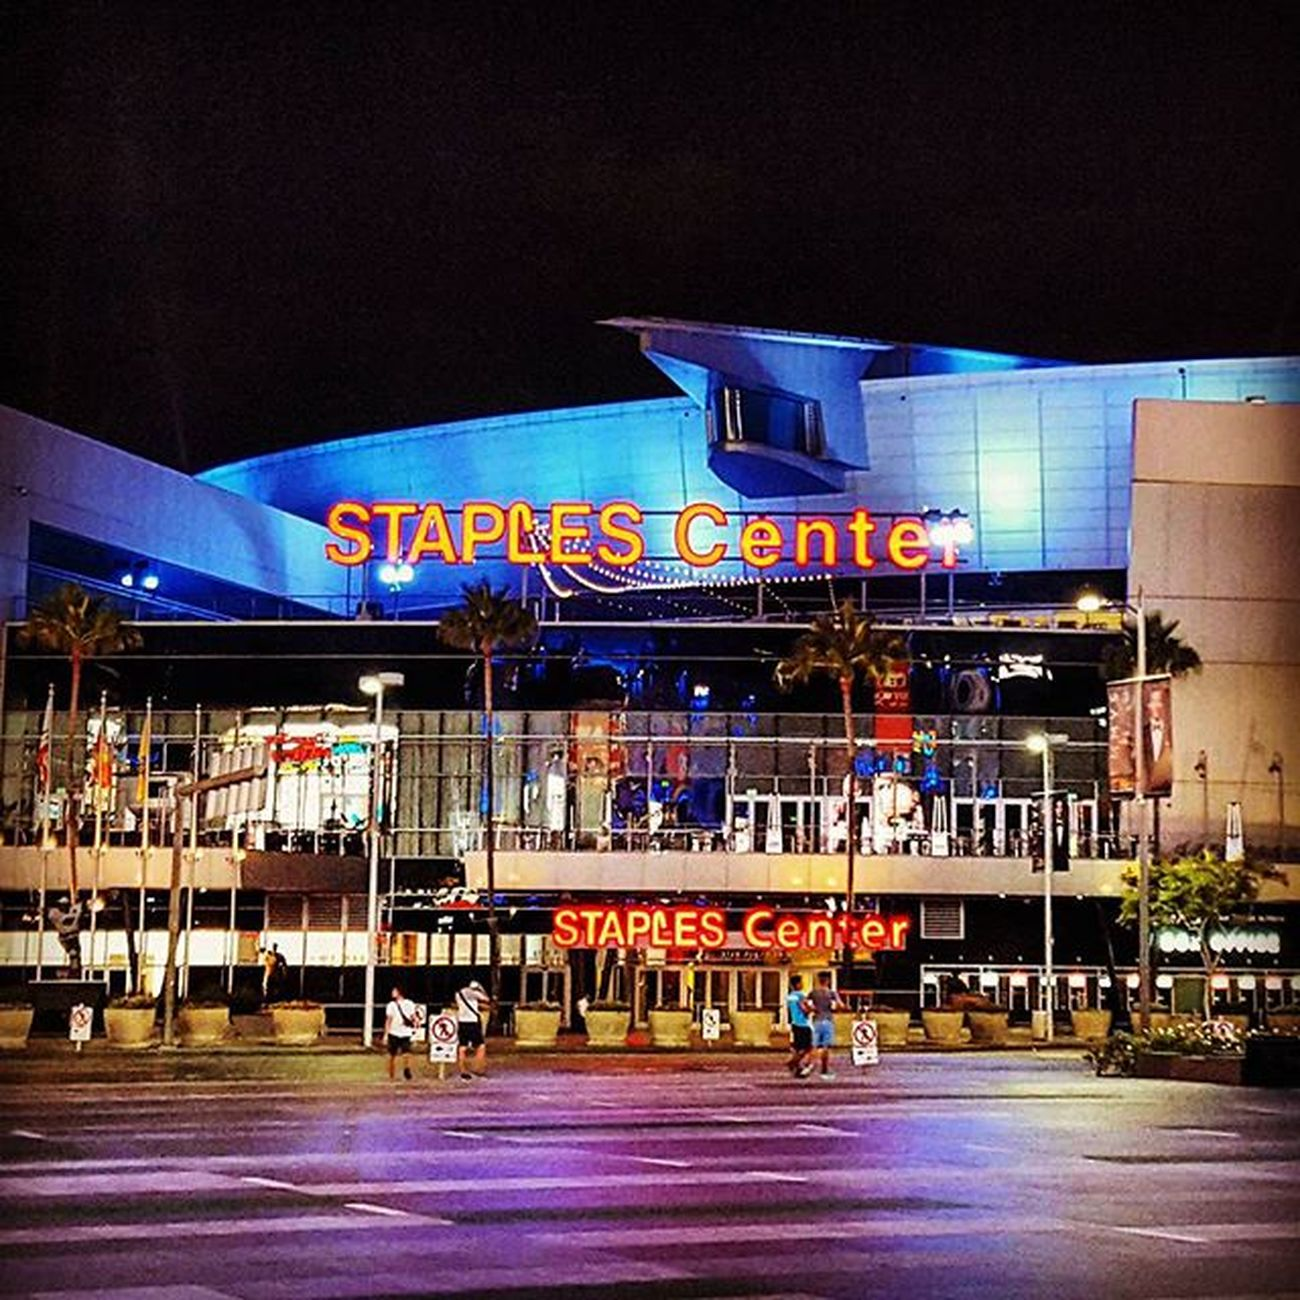 Staples Center. Thisisourhome Lobcity Losangeles Downtown Straightoutta Staplescenter Cali Lalive Lalife Onatuesday